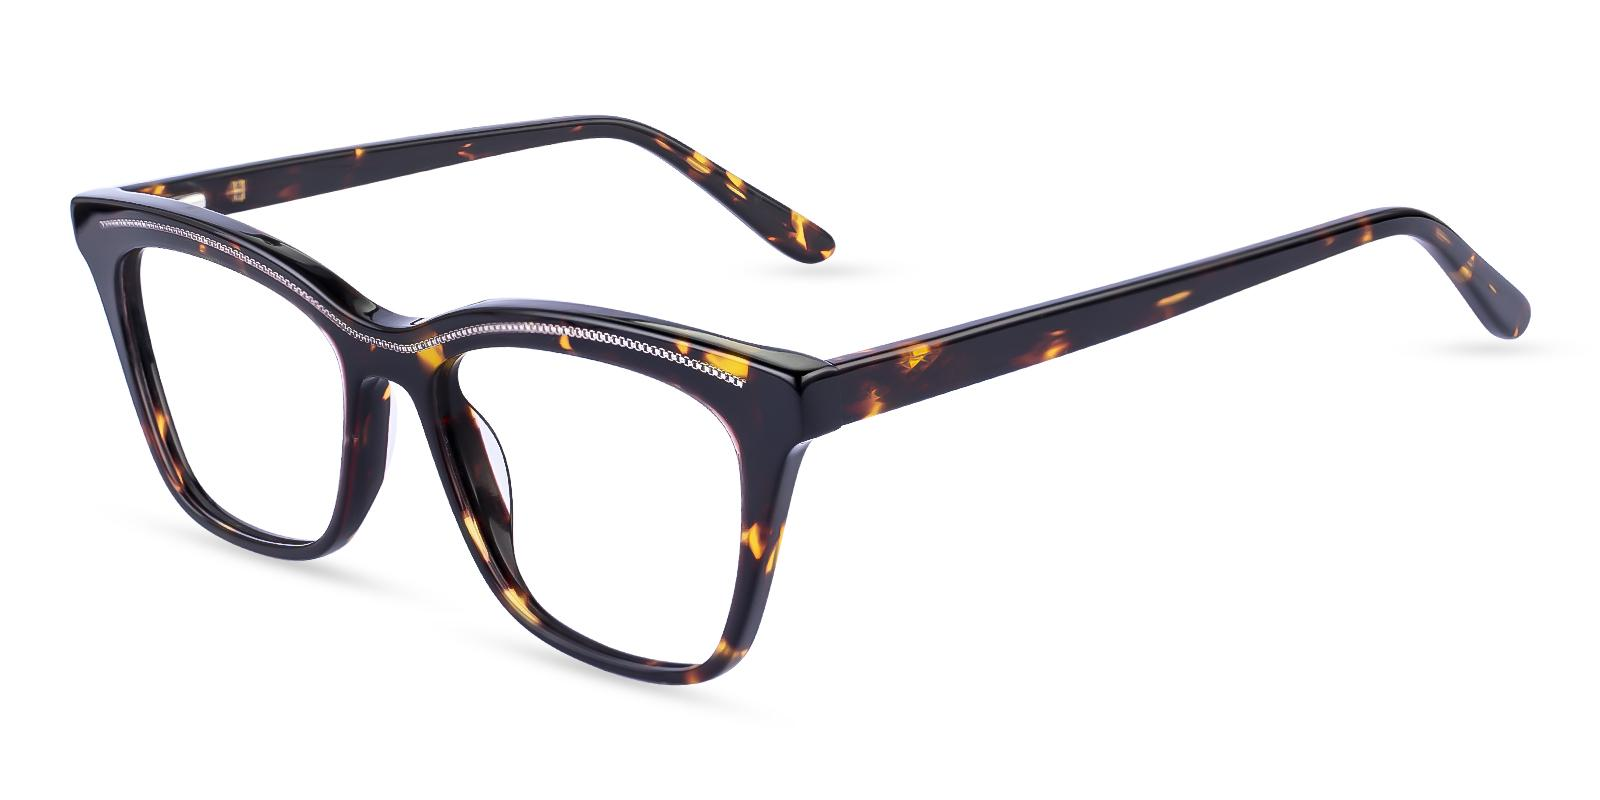 Kate Tortoise Acetate Eyeglasses , Fashion , SpringHinges , UniversalBridgeFit Frames from ABBE Glasses